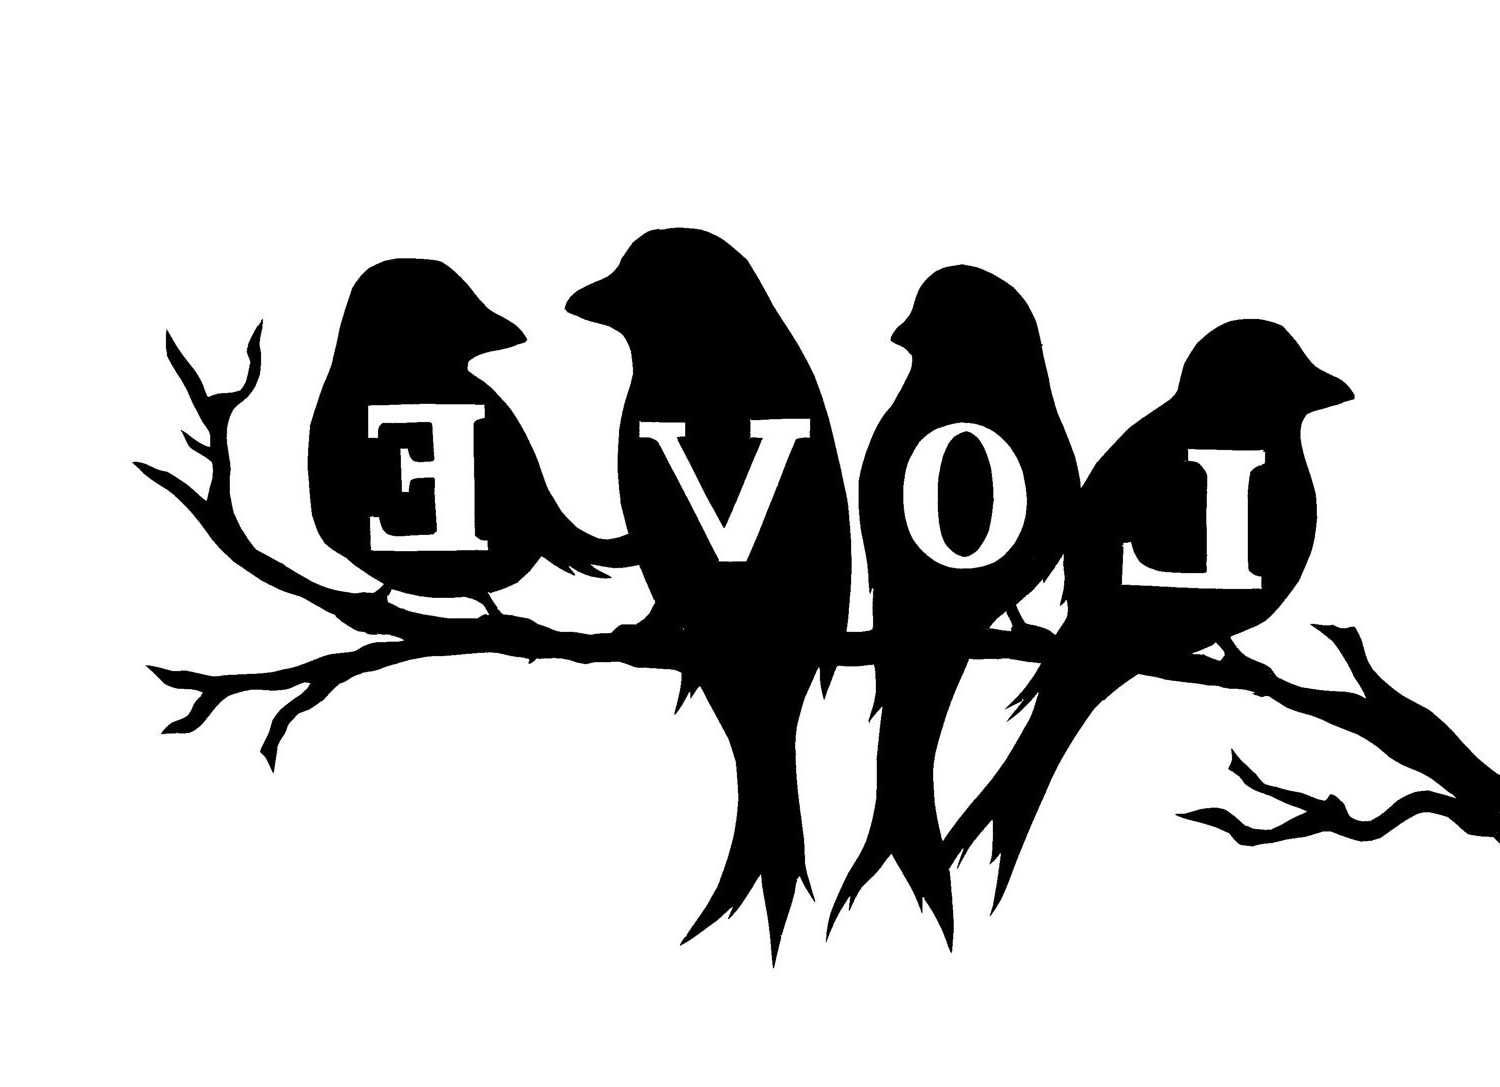 Current Birds On A Branch Wall Decor With Regard To Love Birds Vinyl Wall Decal, Wall Decor, Birds On A Branch, Wall (View 10 of 20)